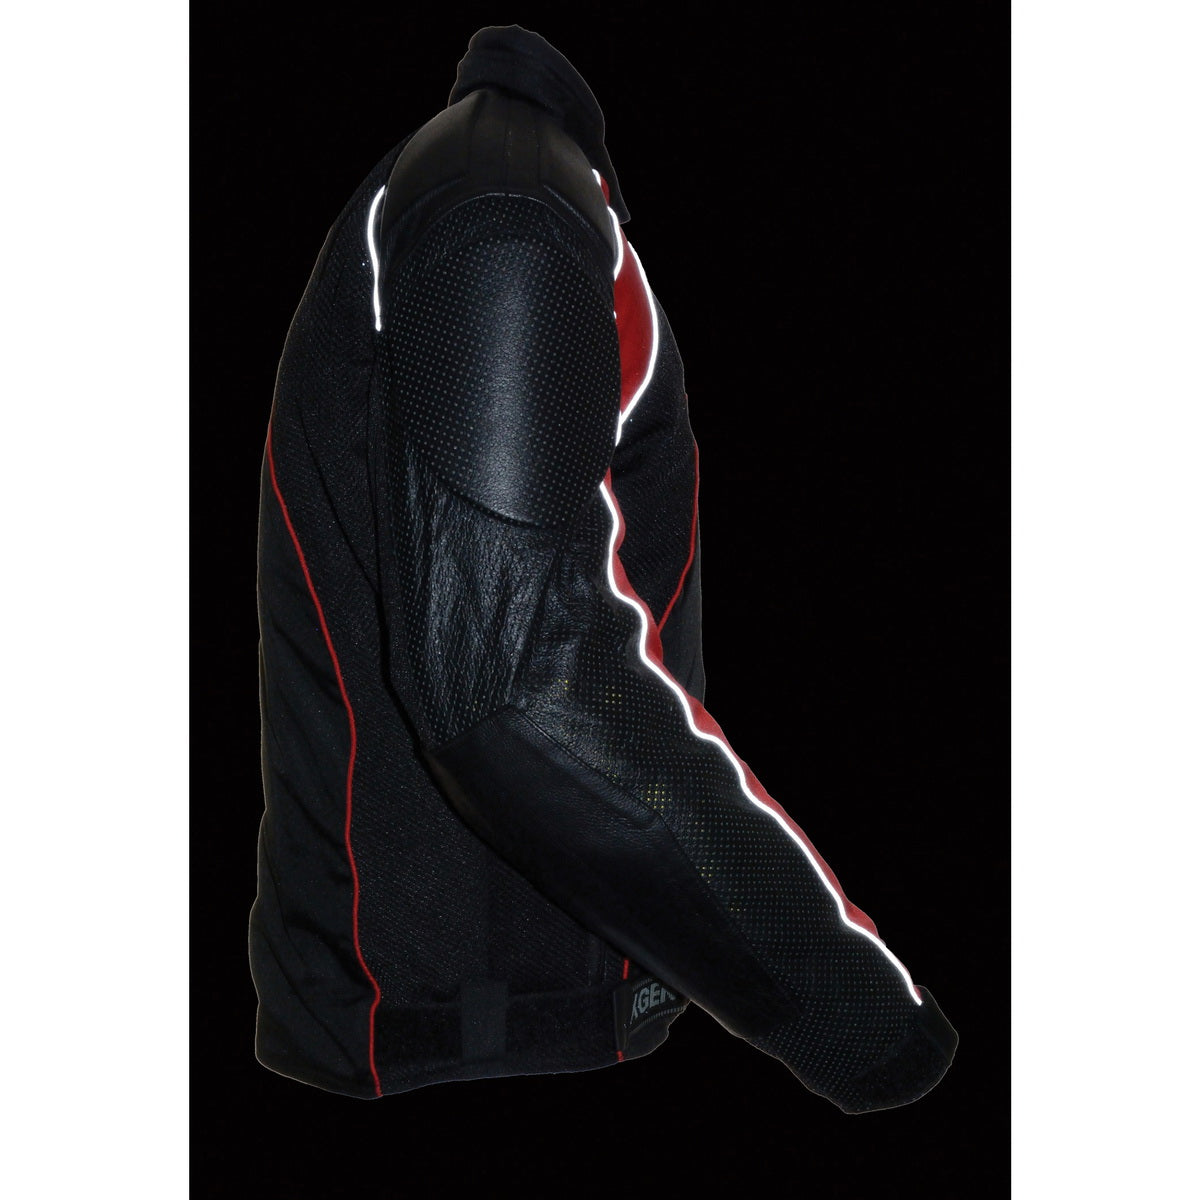 NexGen SH2153 Men's Combo Black and Red Armored Leather and Textile